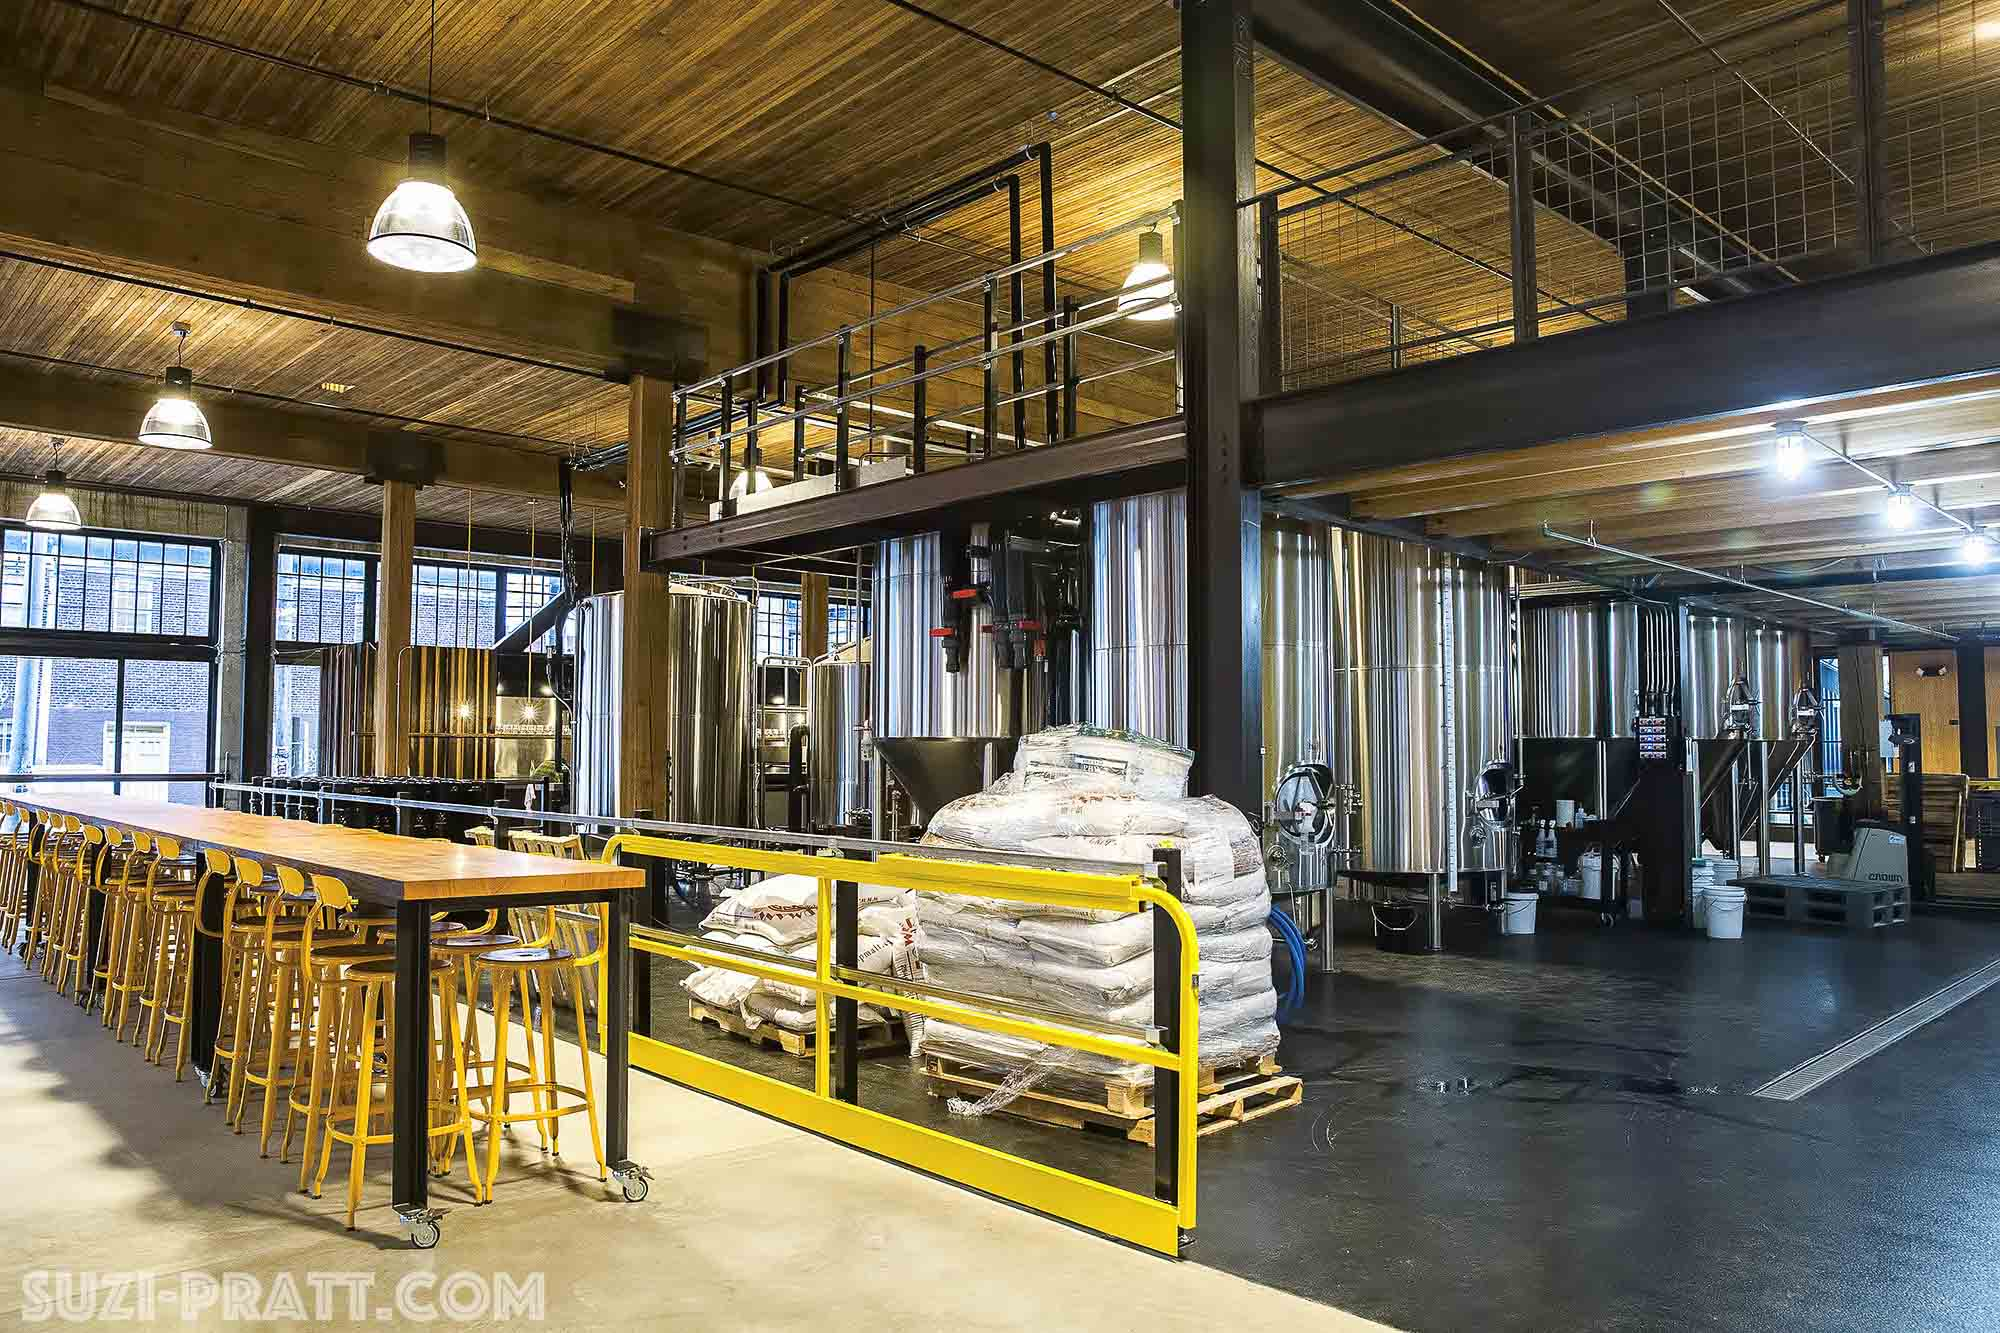 Optimism brewing company interior photographer in seattle